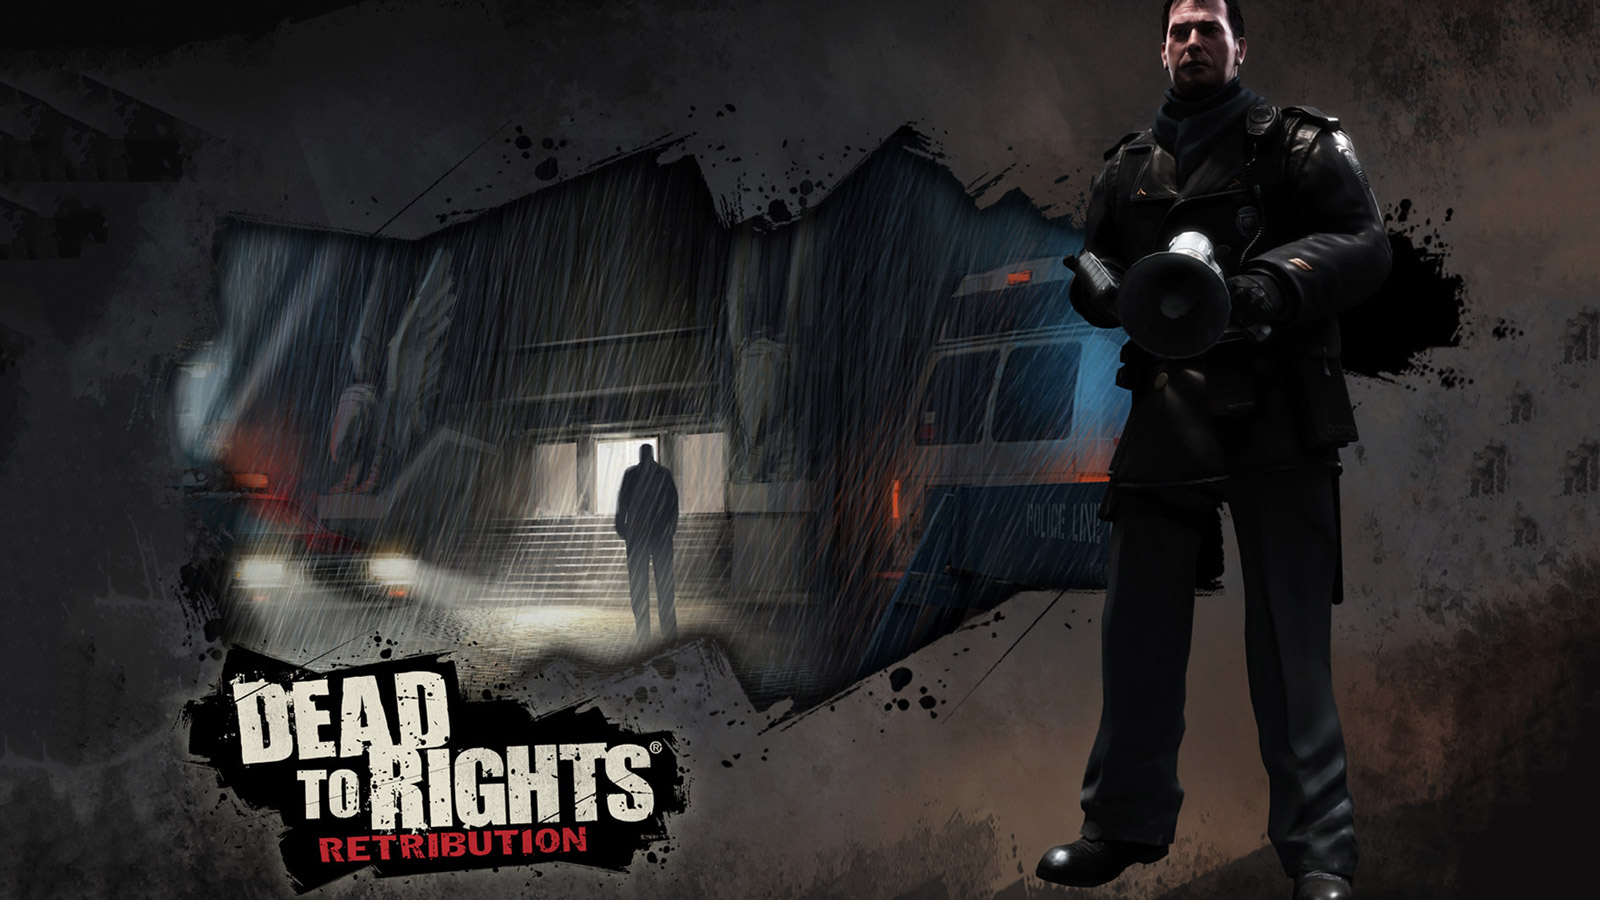 Dead to Rights: Retribution Wallpaper in 1600x900